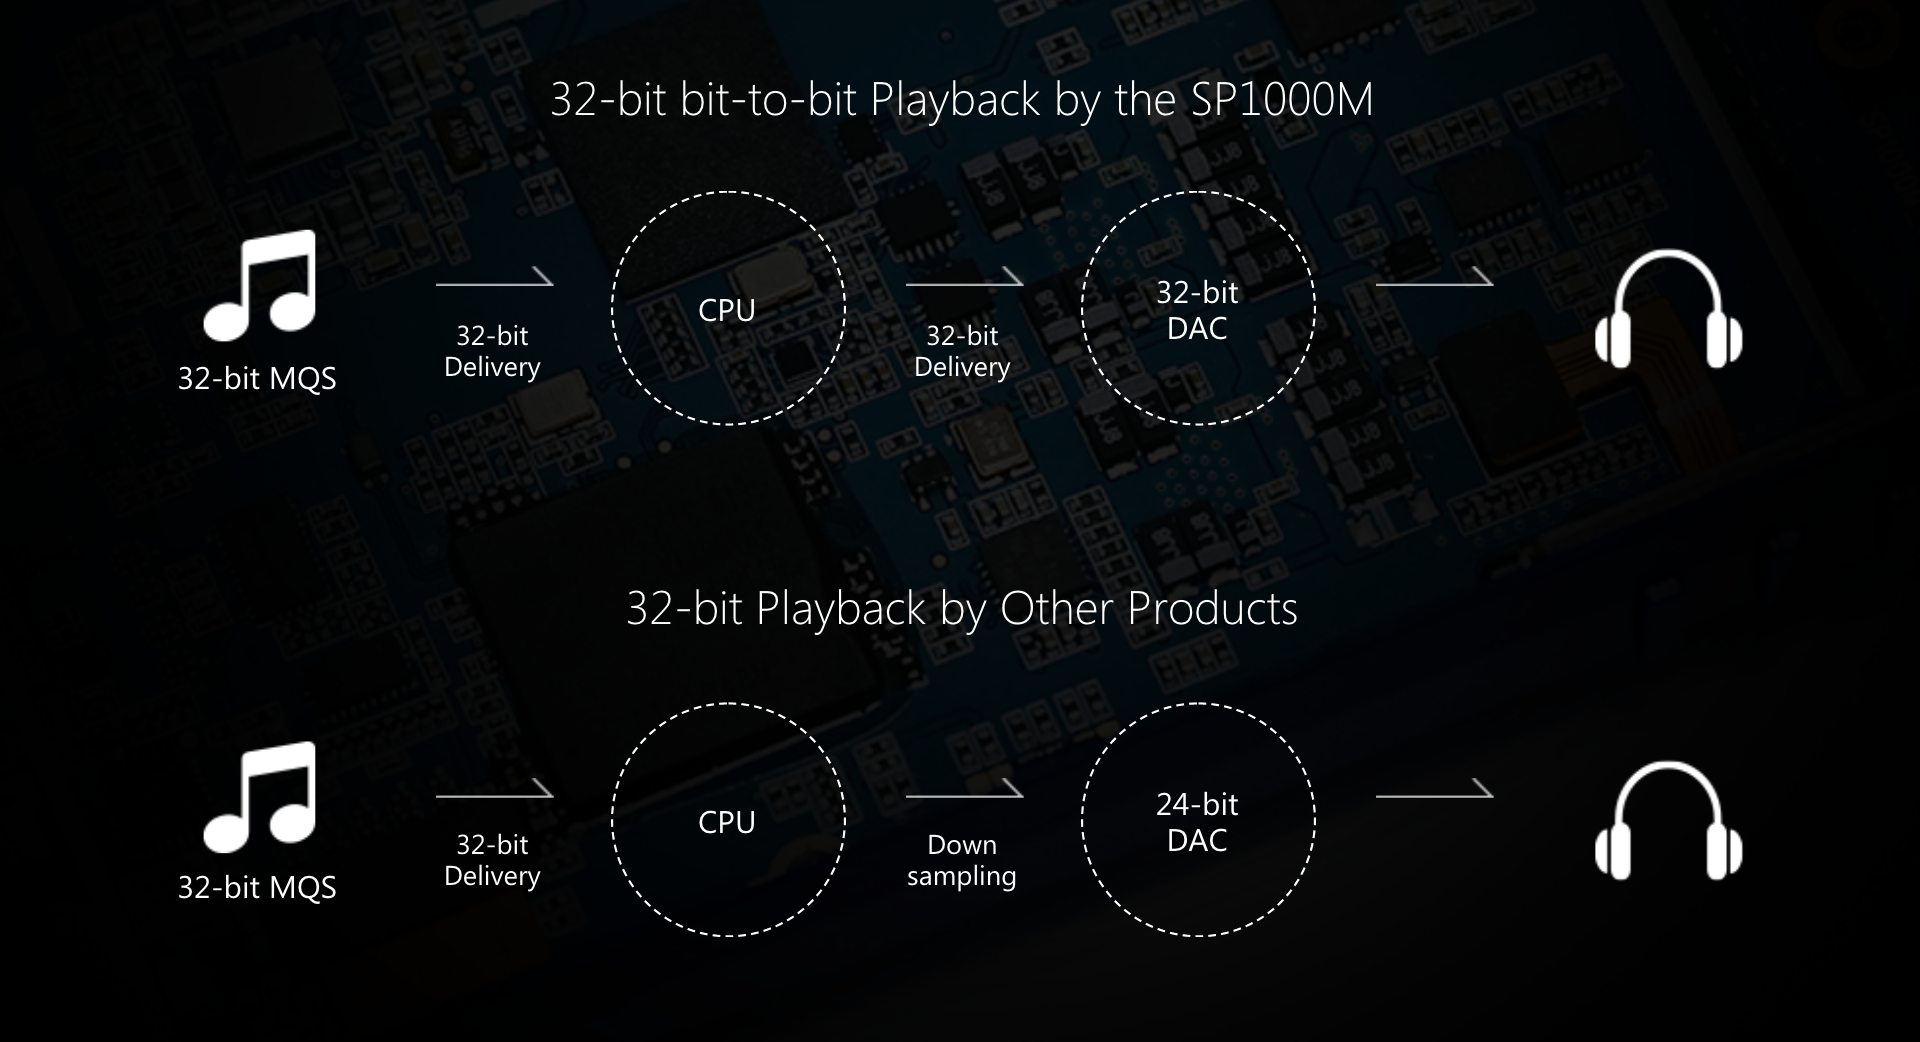 32-bit bit-to-bit playback chart